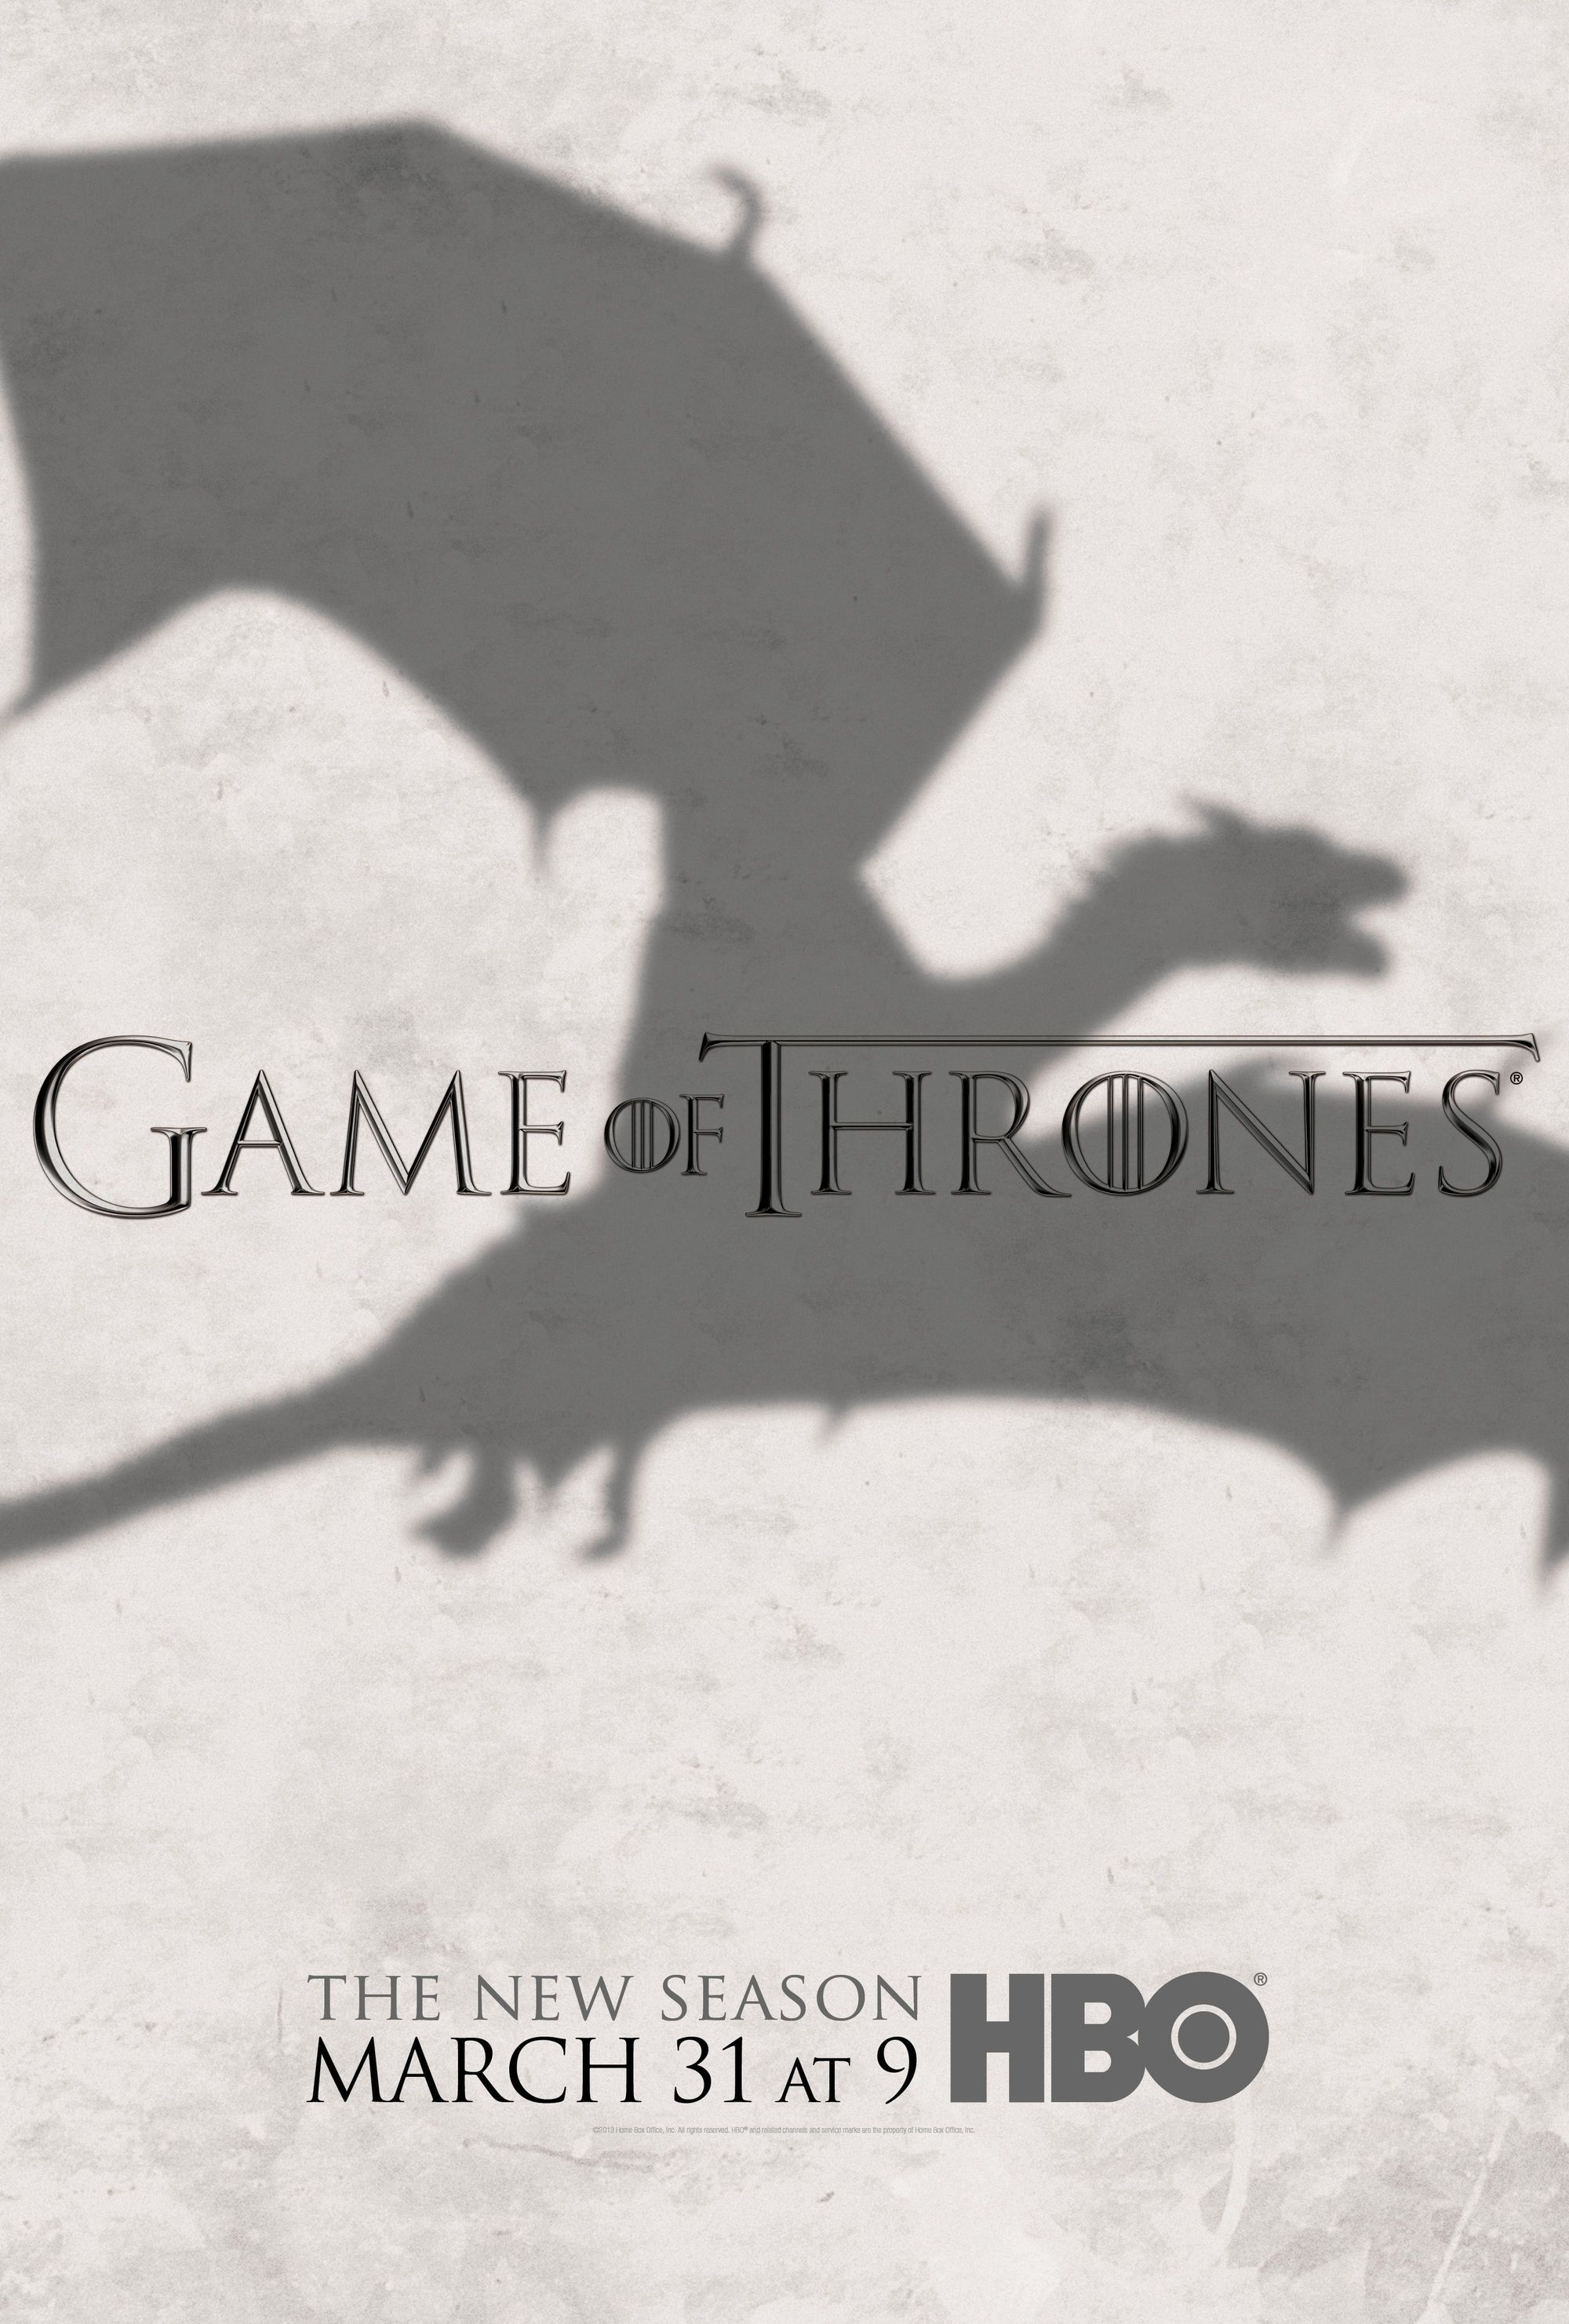 Game of Thrones History and Lore season 3 - Long-métrage d'animation (2014) streaming VF gratuit complet